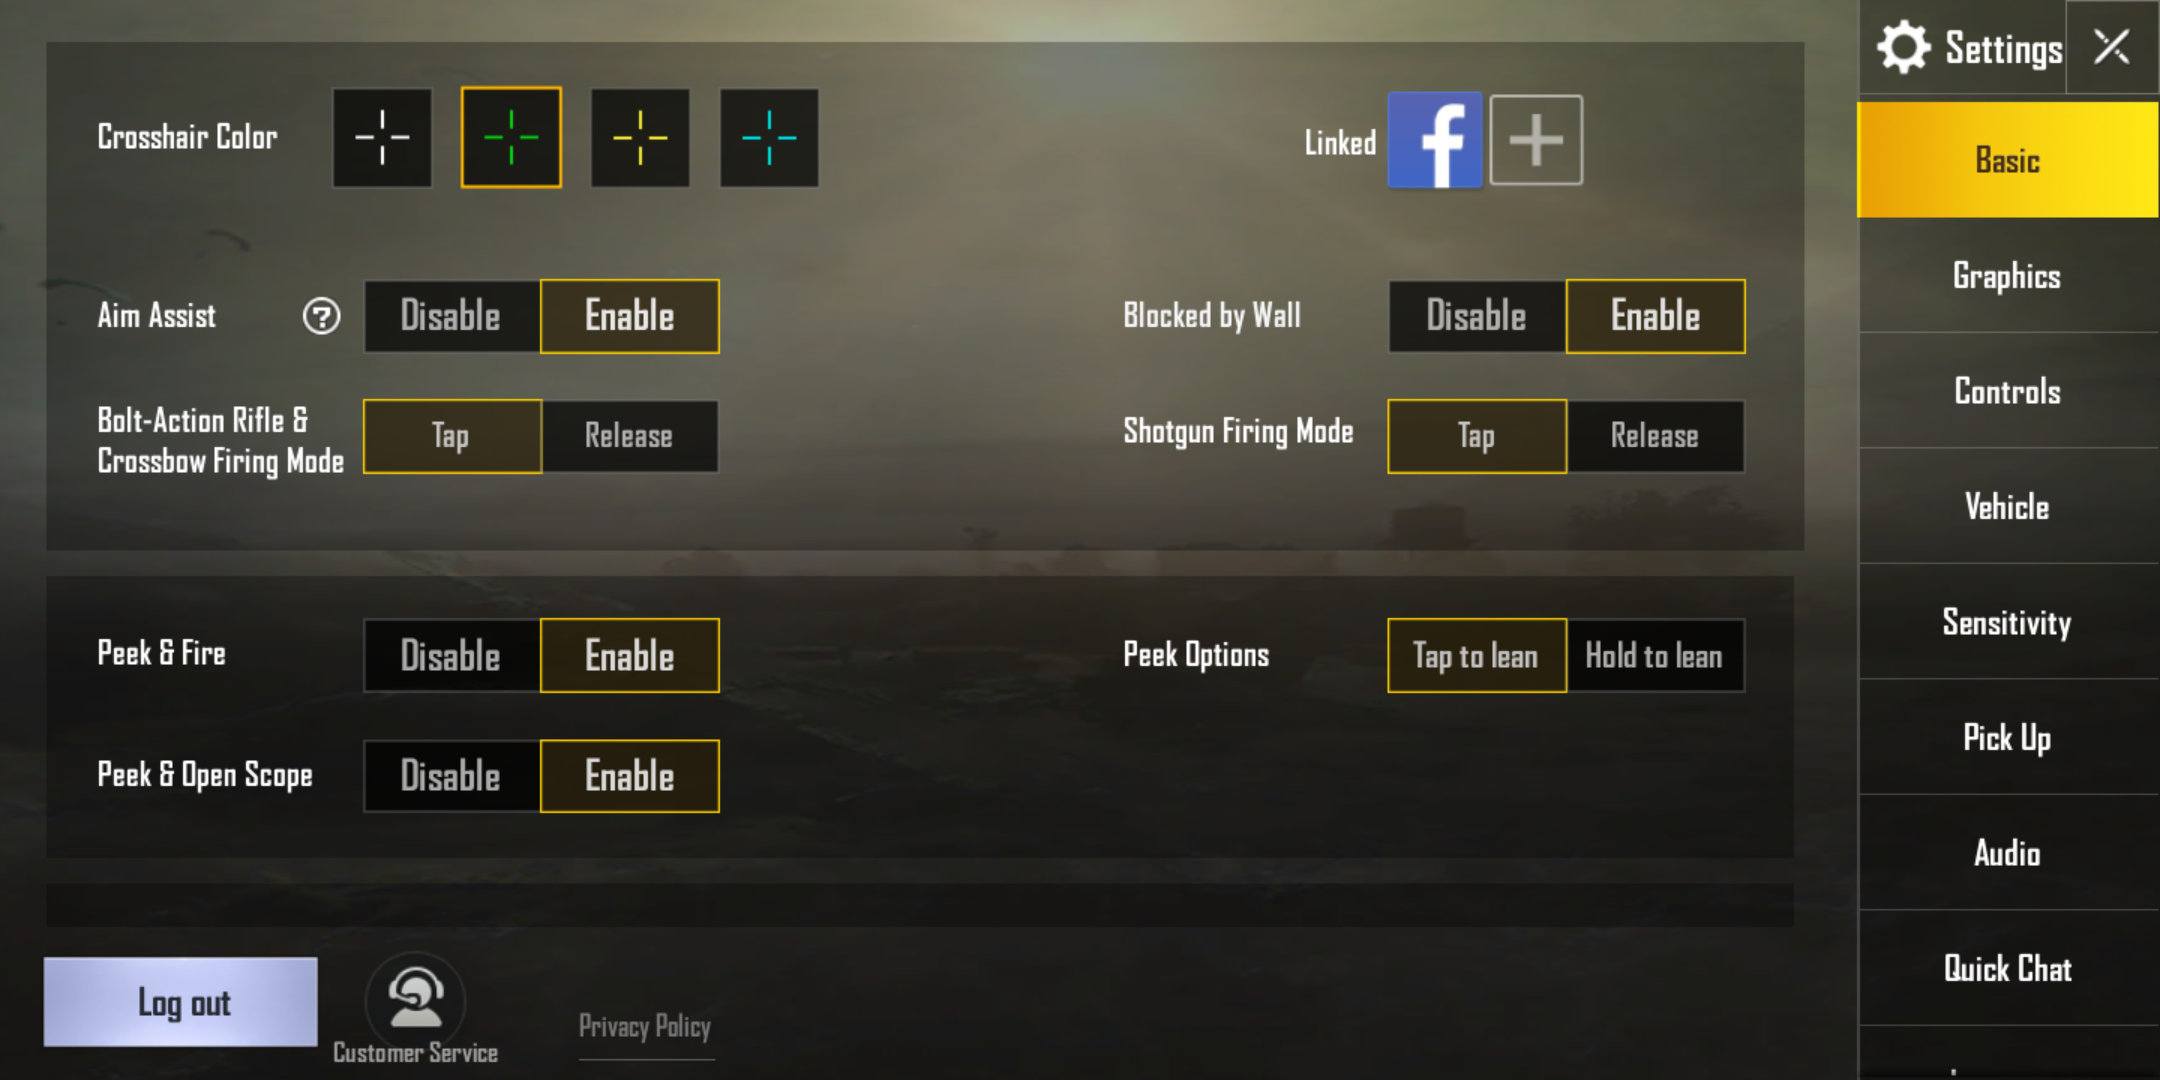 Why aim assist is not provided in PUBG mobile game? - Quora